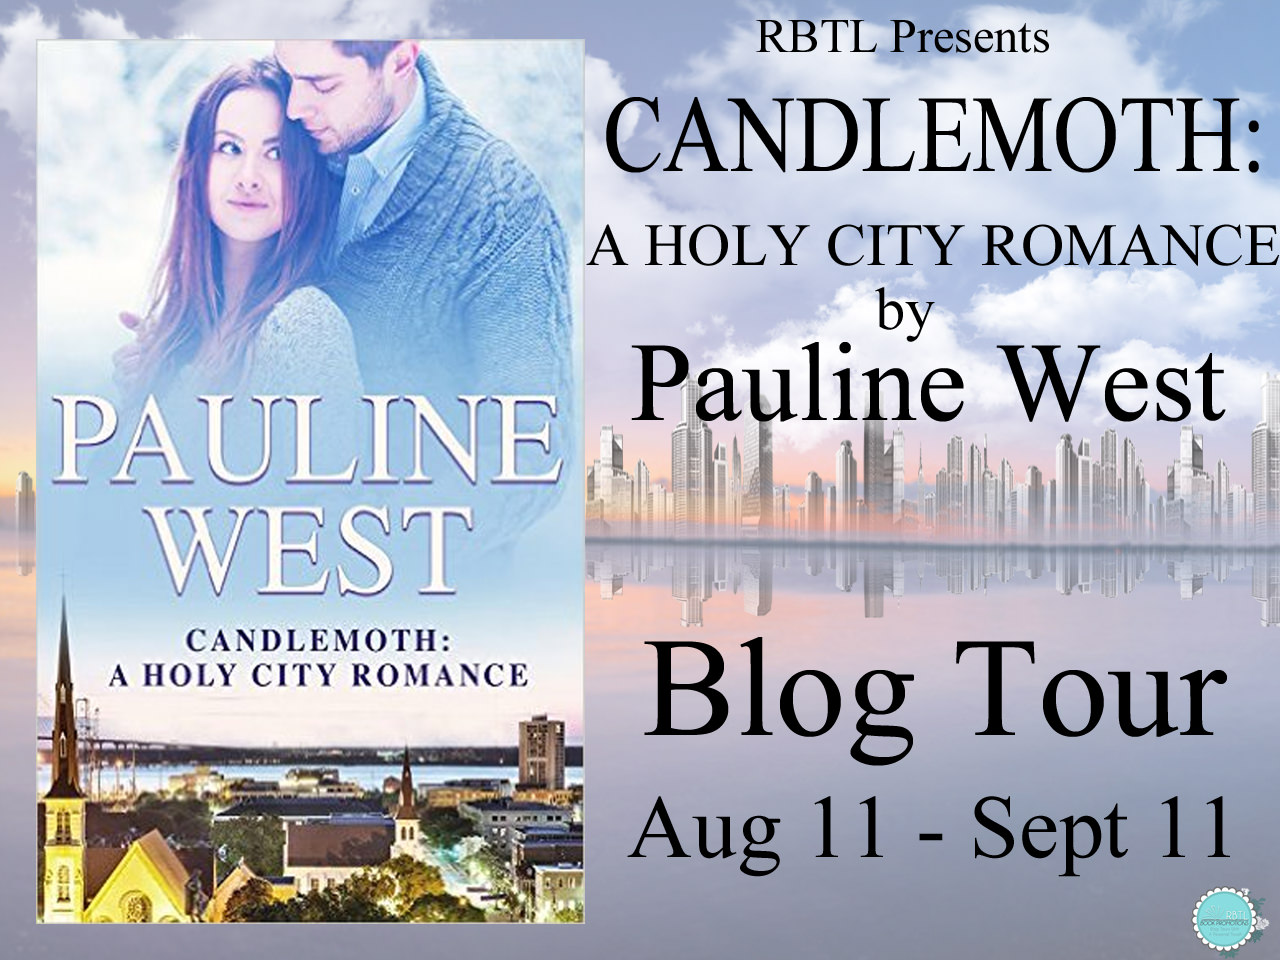 Candlemoth: A Holy City Romance